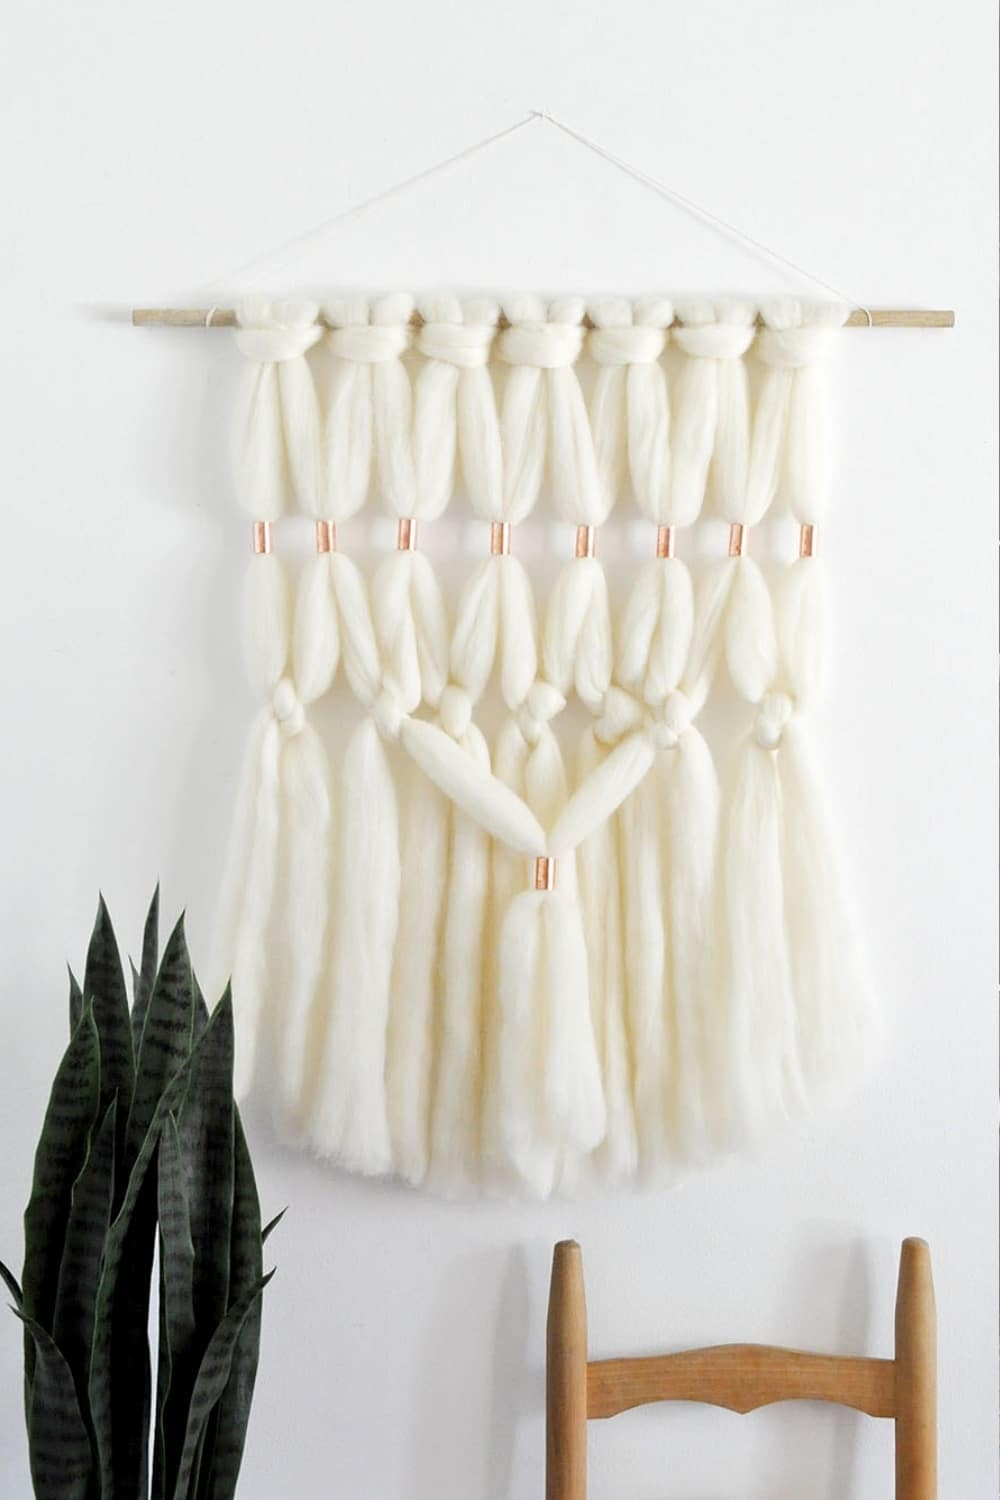 Gorgeous DIY Copper Wool Roving Macrame Wall Hanging 24